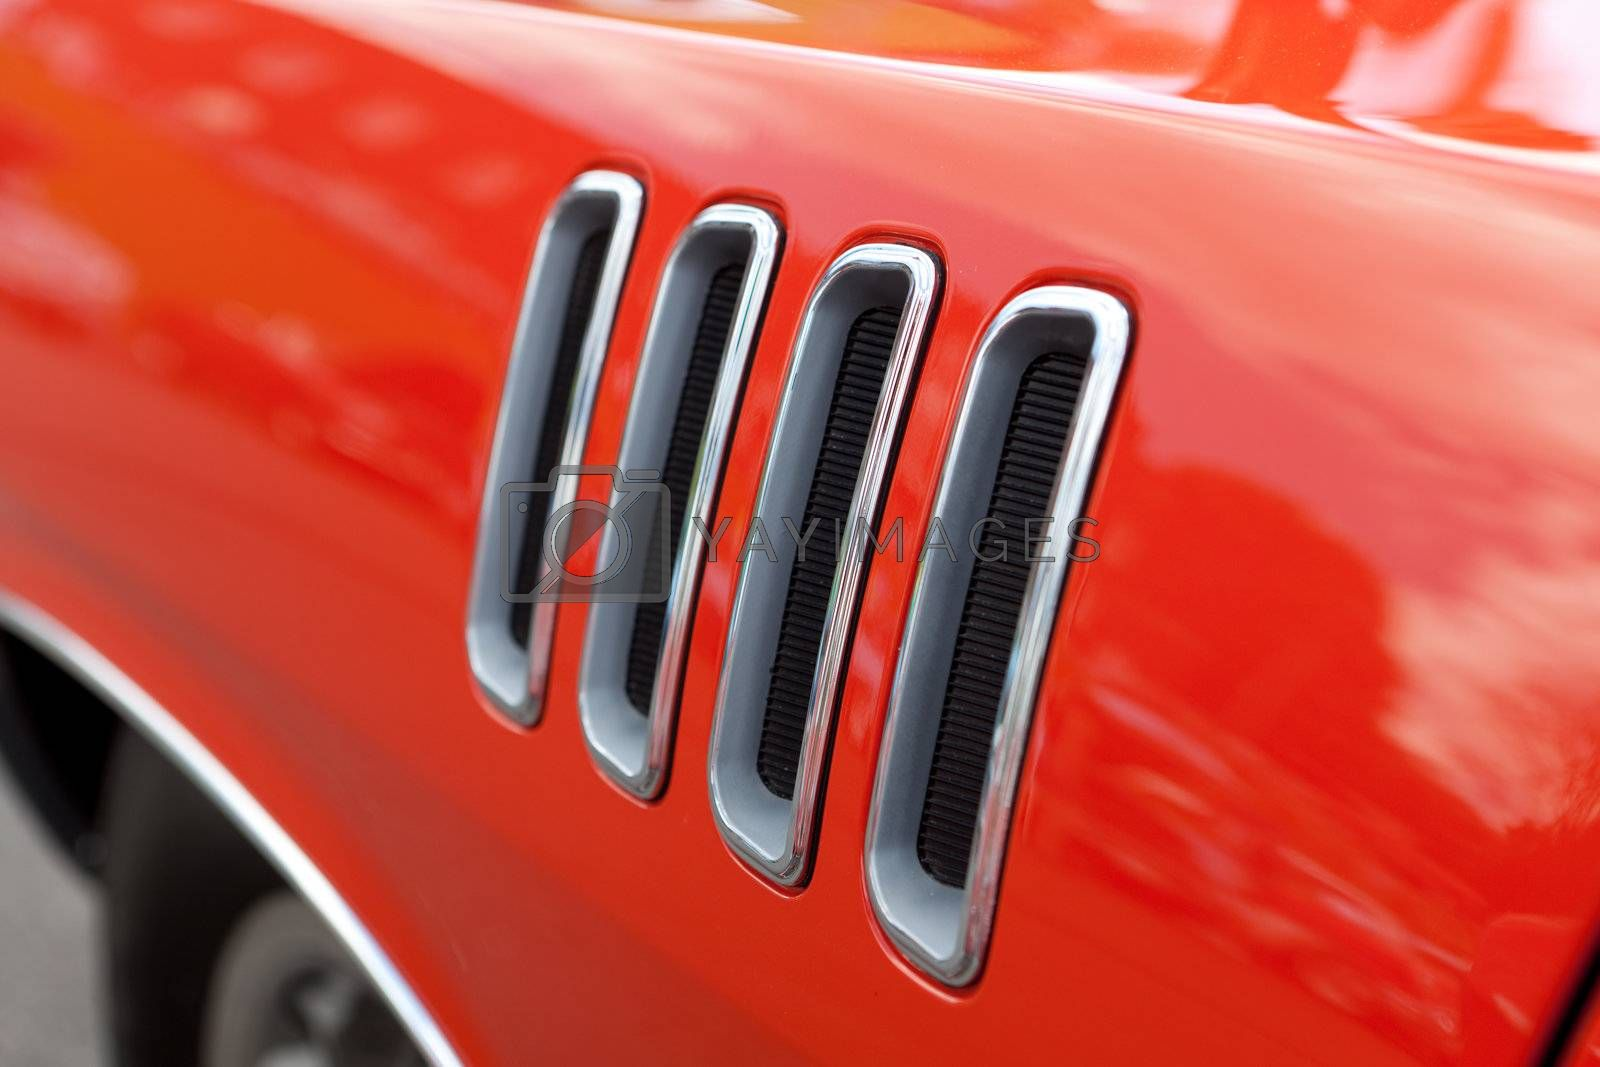 Muscle Car Fender Vents by graficallyminded